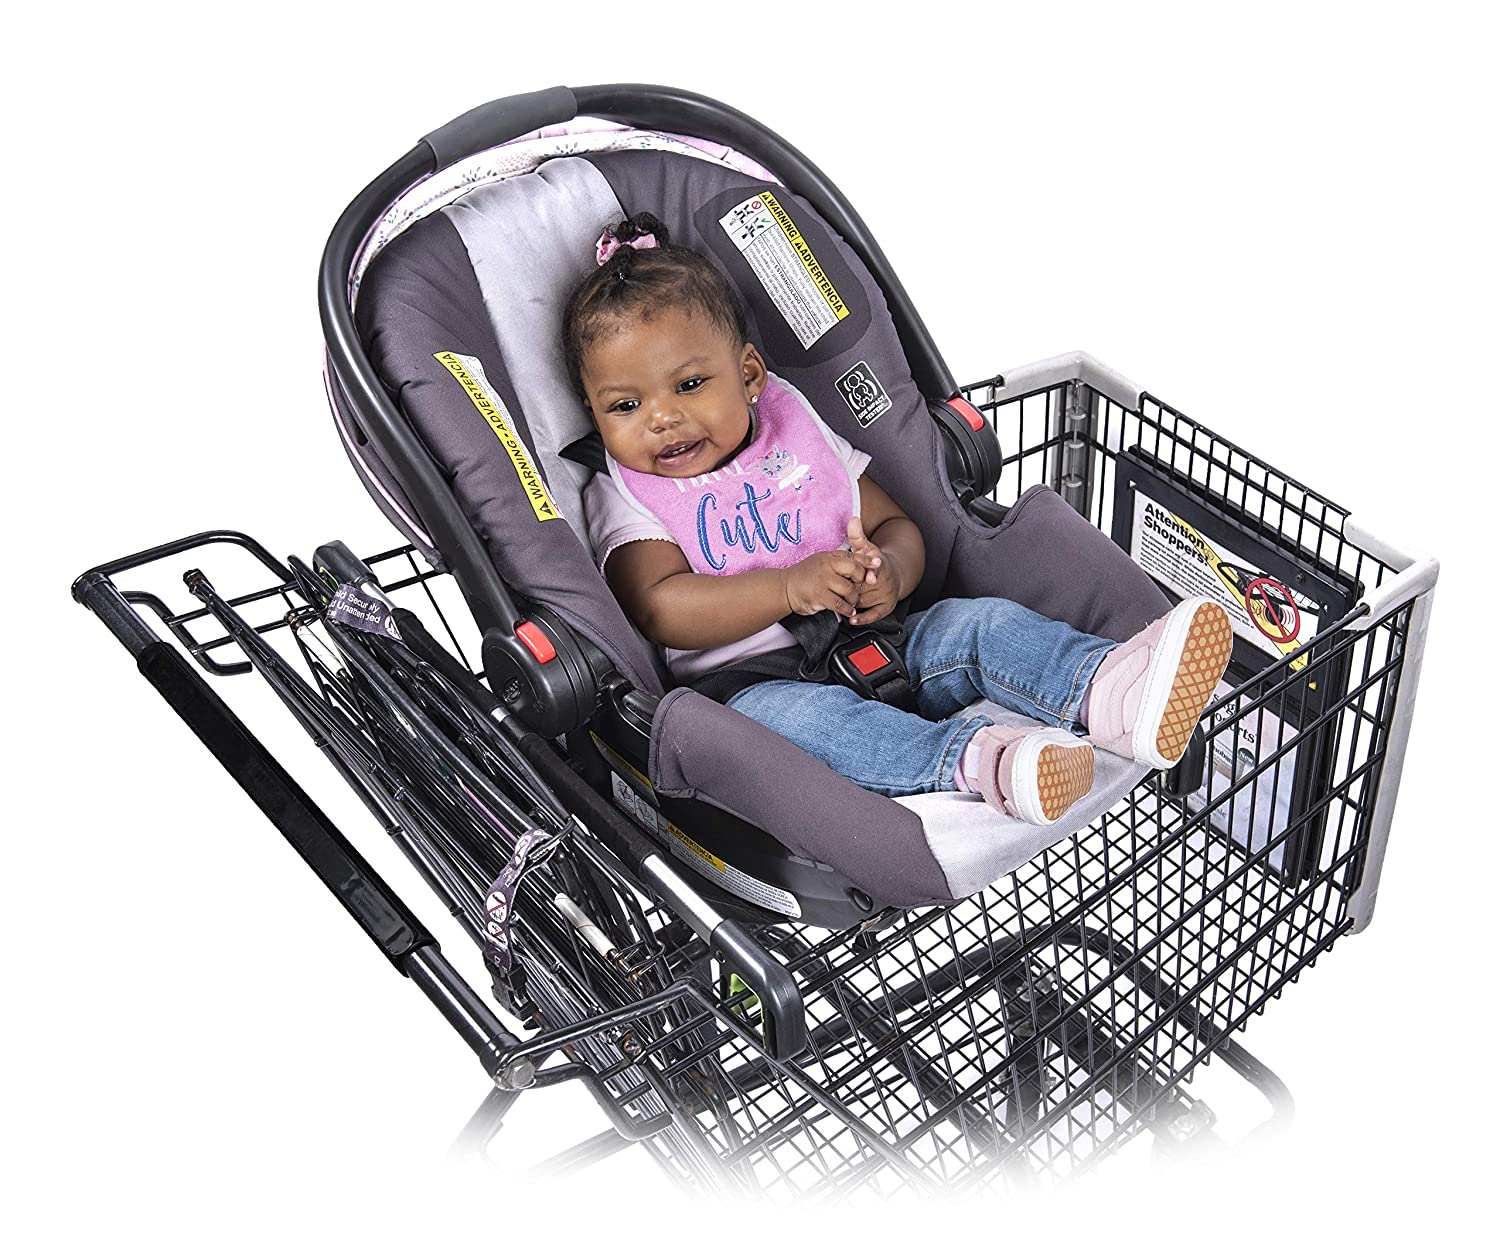 Shopping Cart Hammock For Infants Carrying Babies In Grocery Carts Binxy Baby